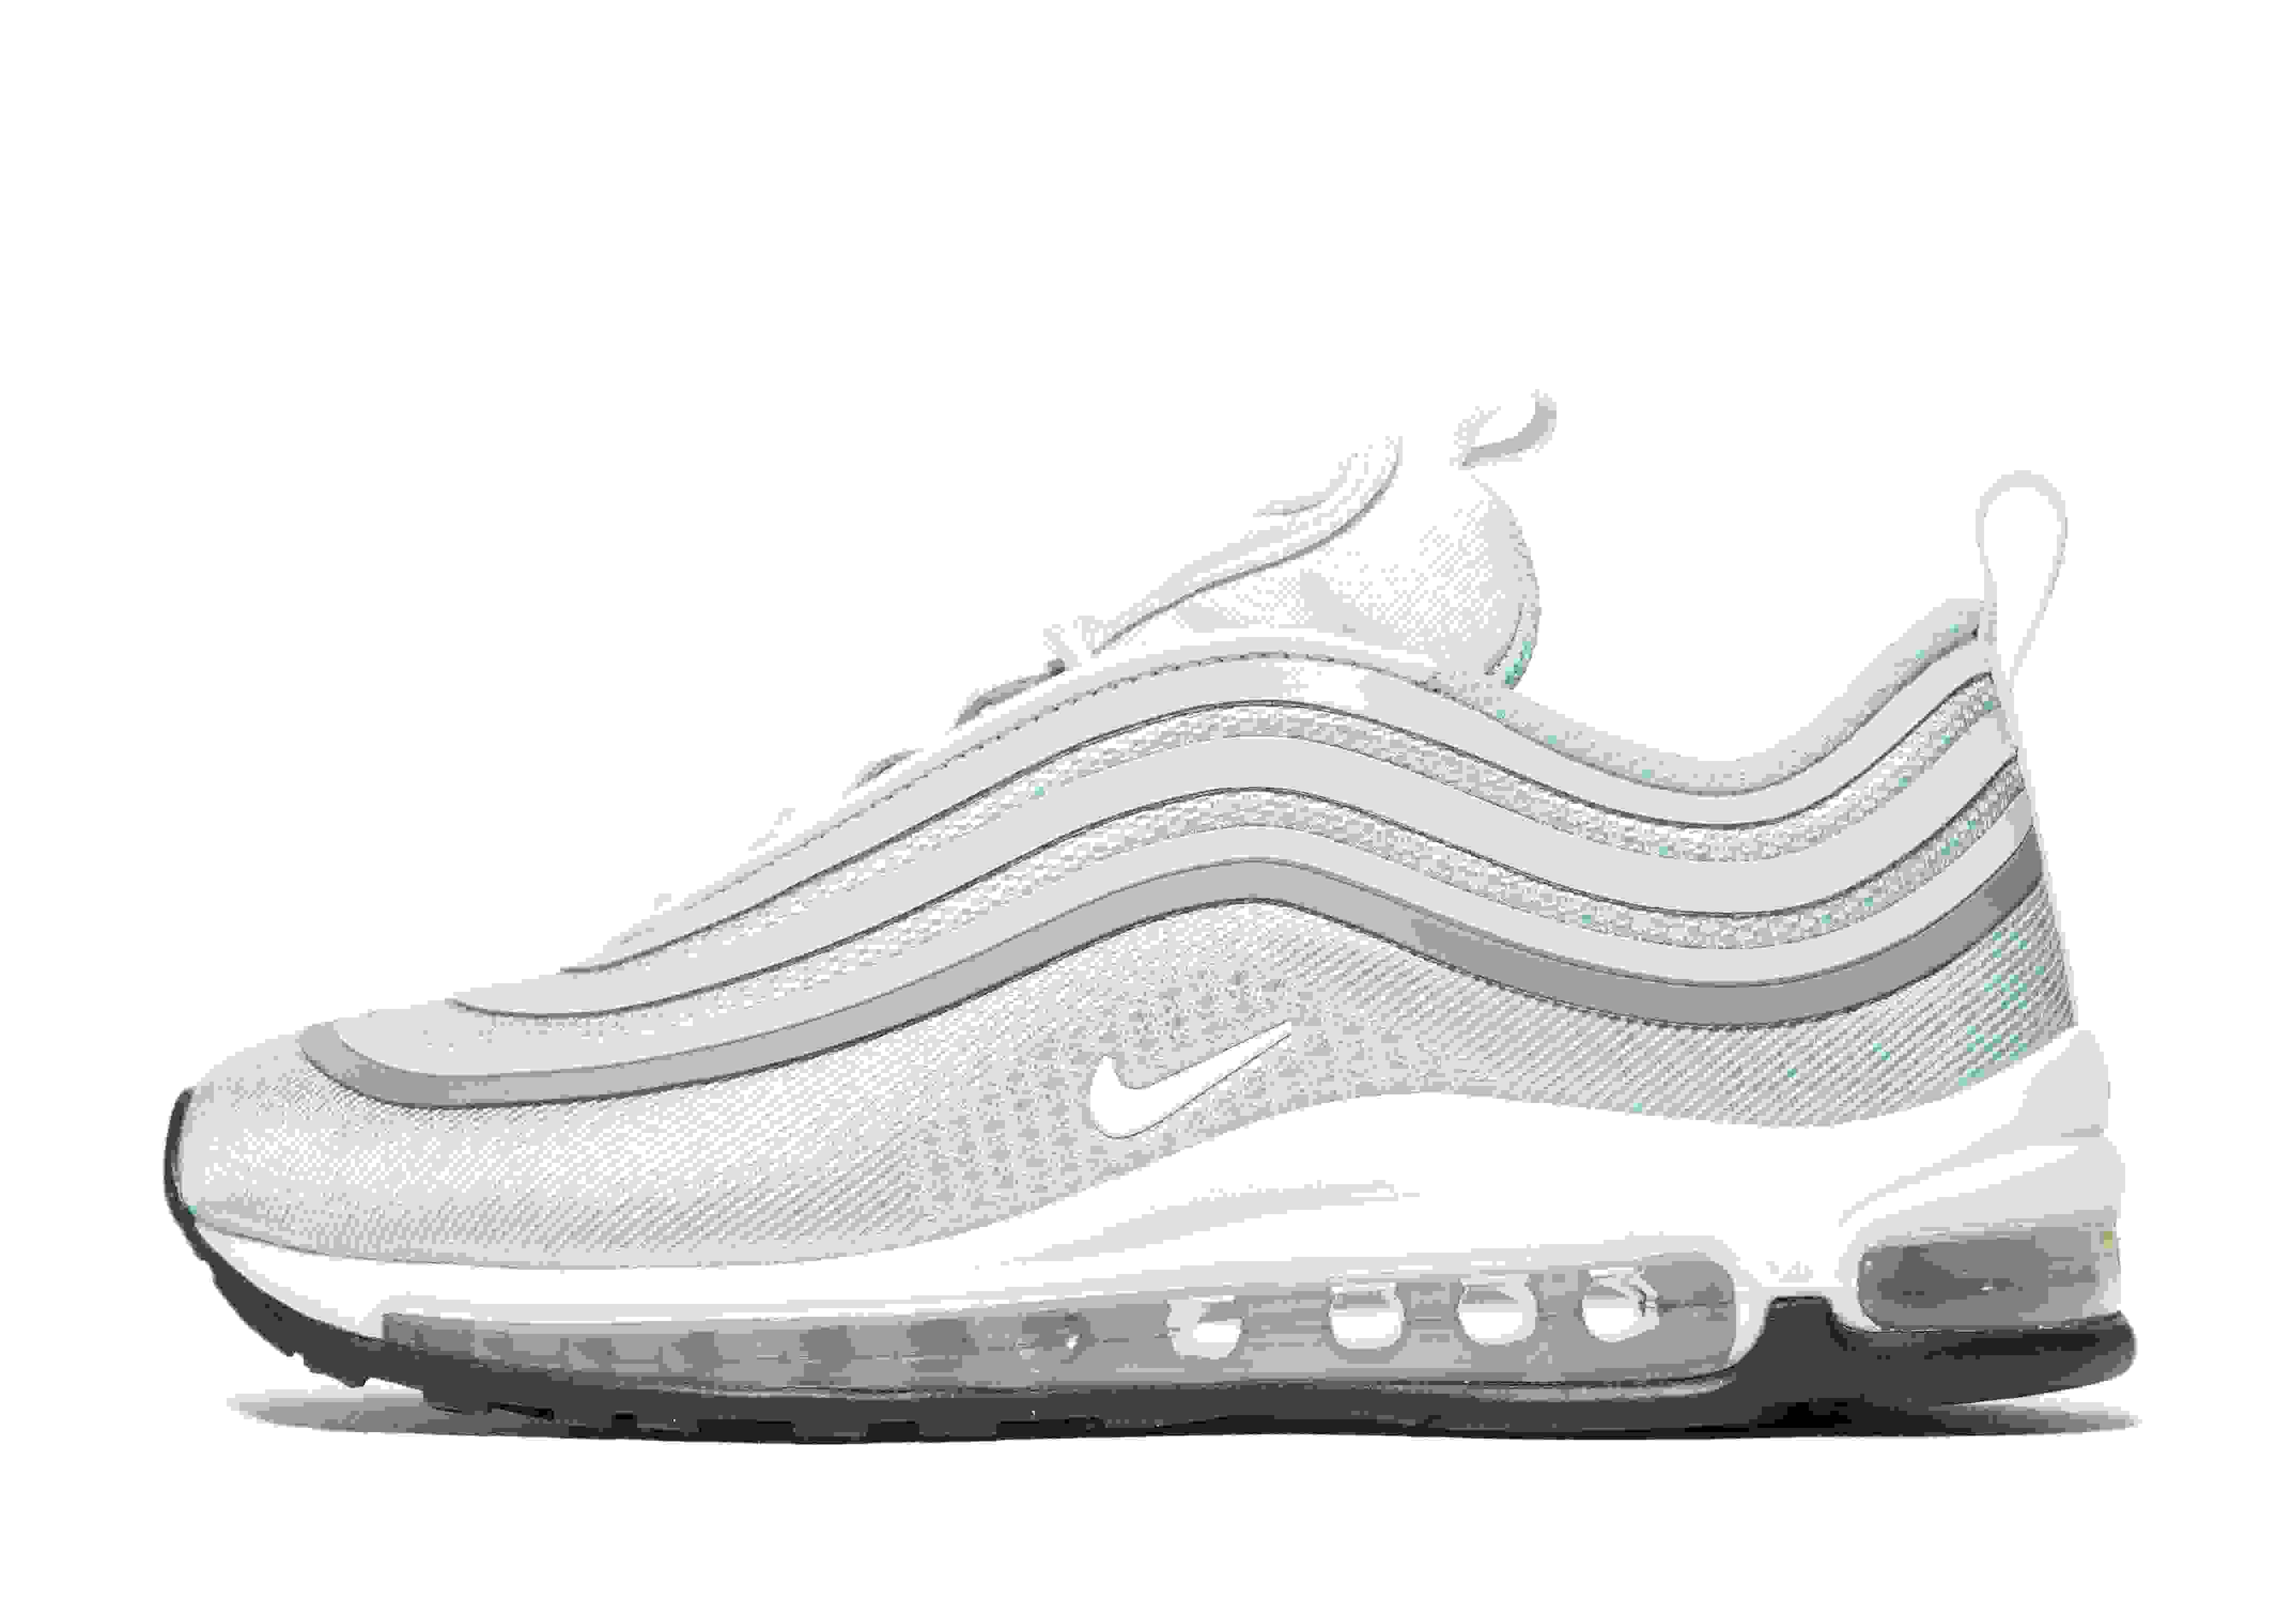 wholesale dealer a2c56 68d60 italy from jd sports nike air max 2017 a25f6 7d17c  authentic jd nike air  max junior f39b7 e8778